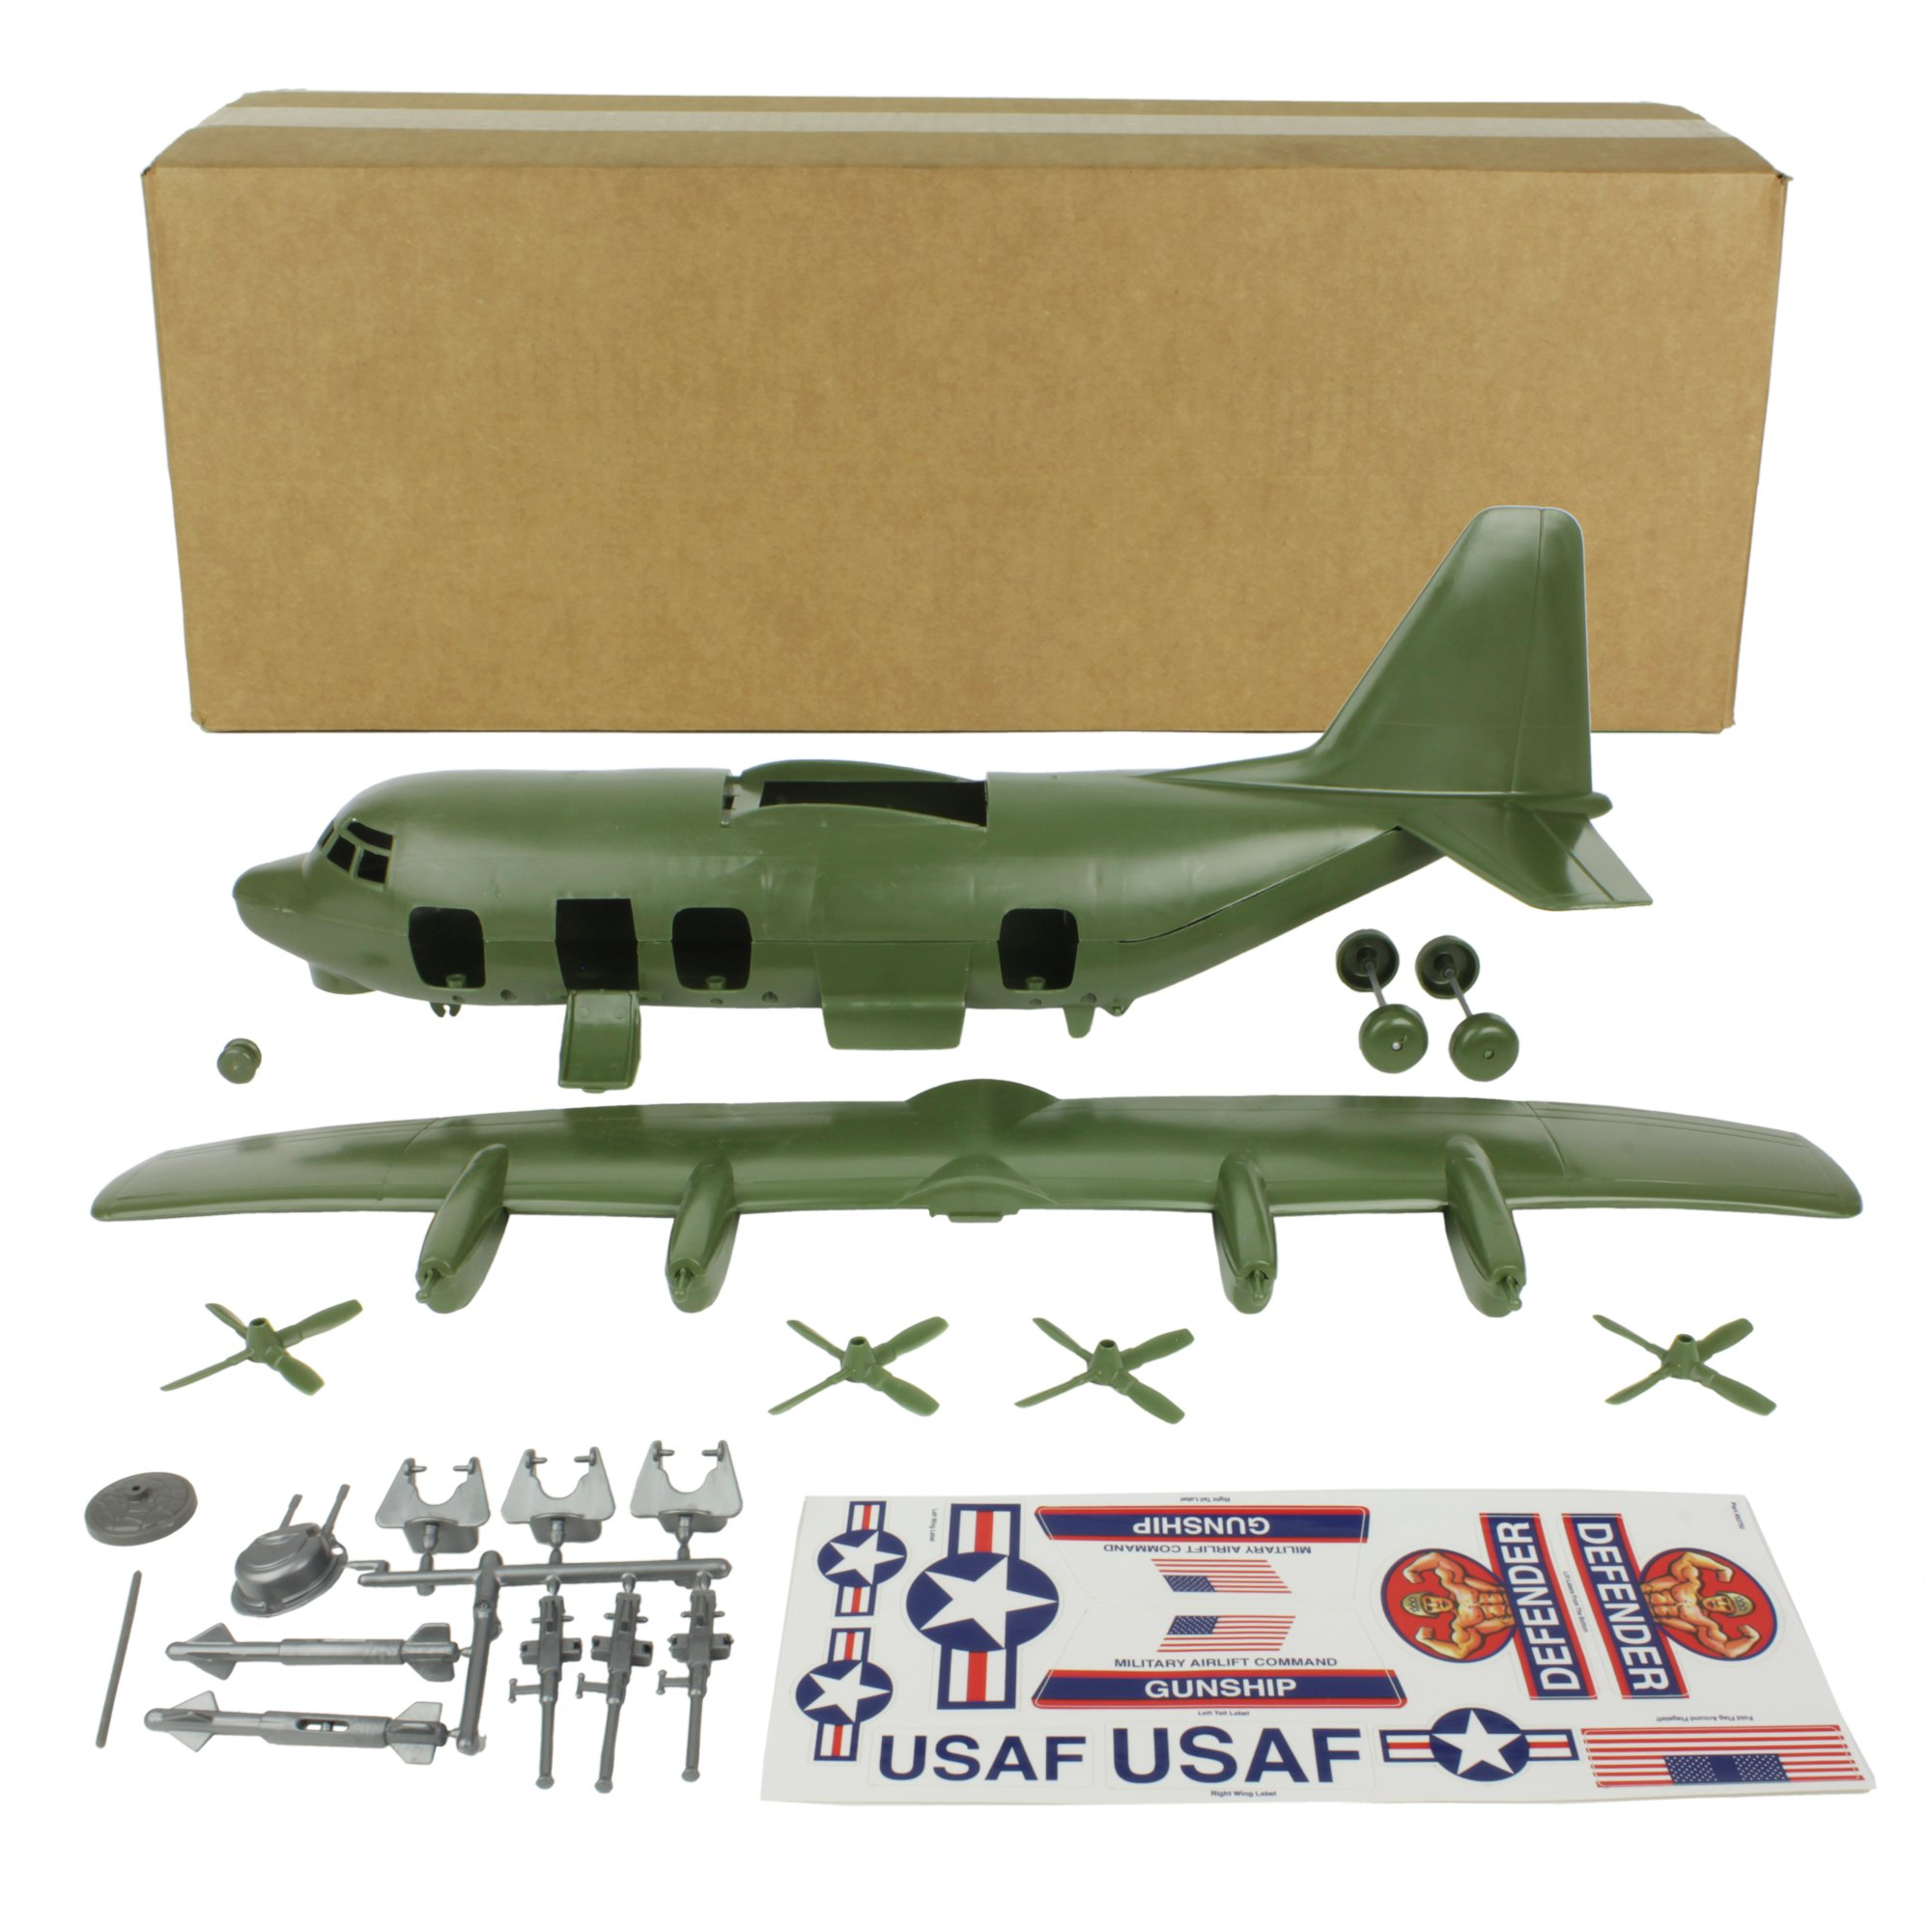 TimMee Plastic Army Men C130 Playset -27pc Giant Military Airplane Made in USA by Tim Mee Toy (Image #3)